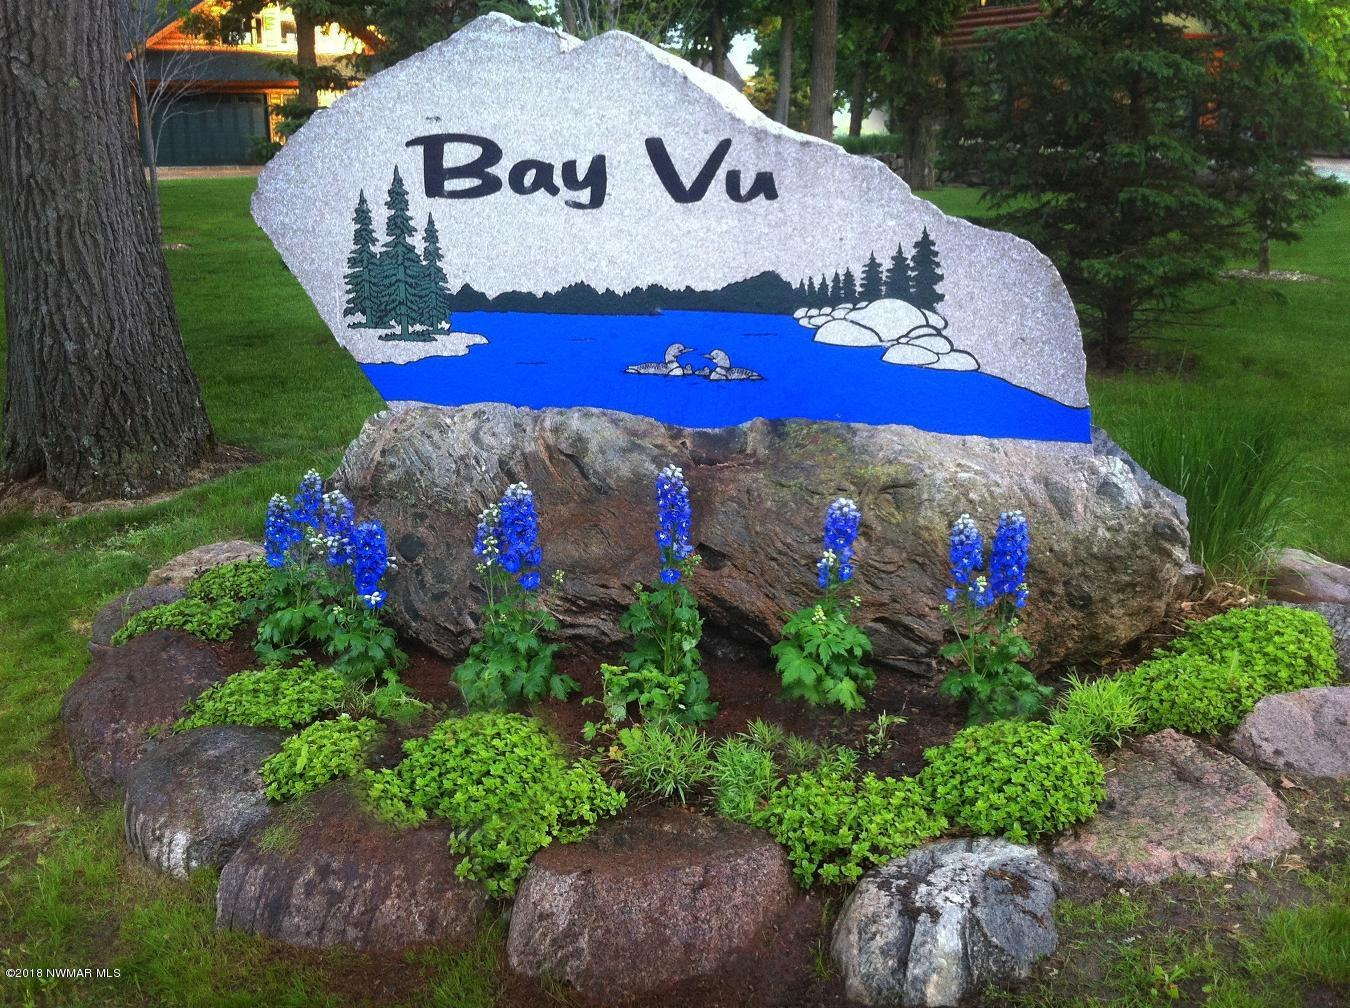 Welcome to Bay Vu.